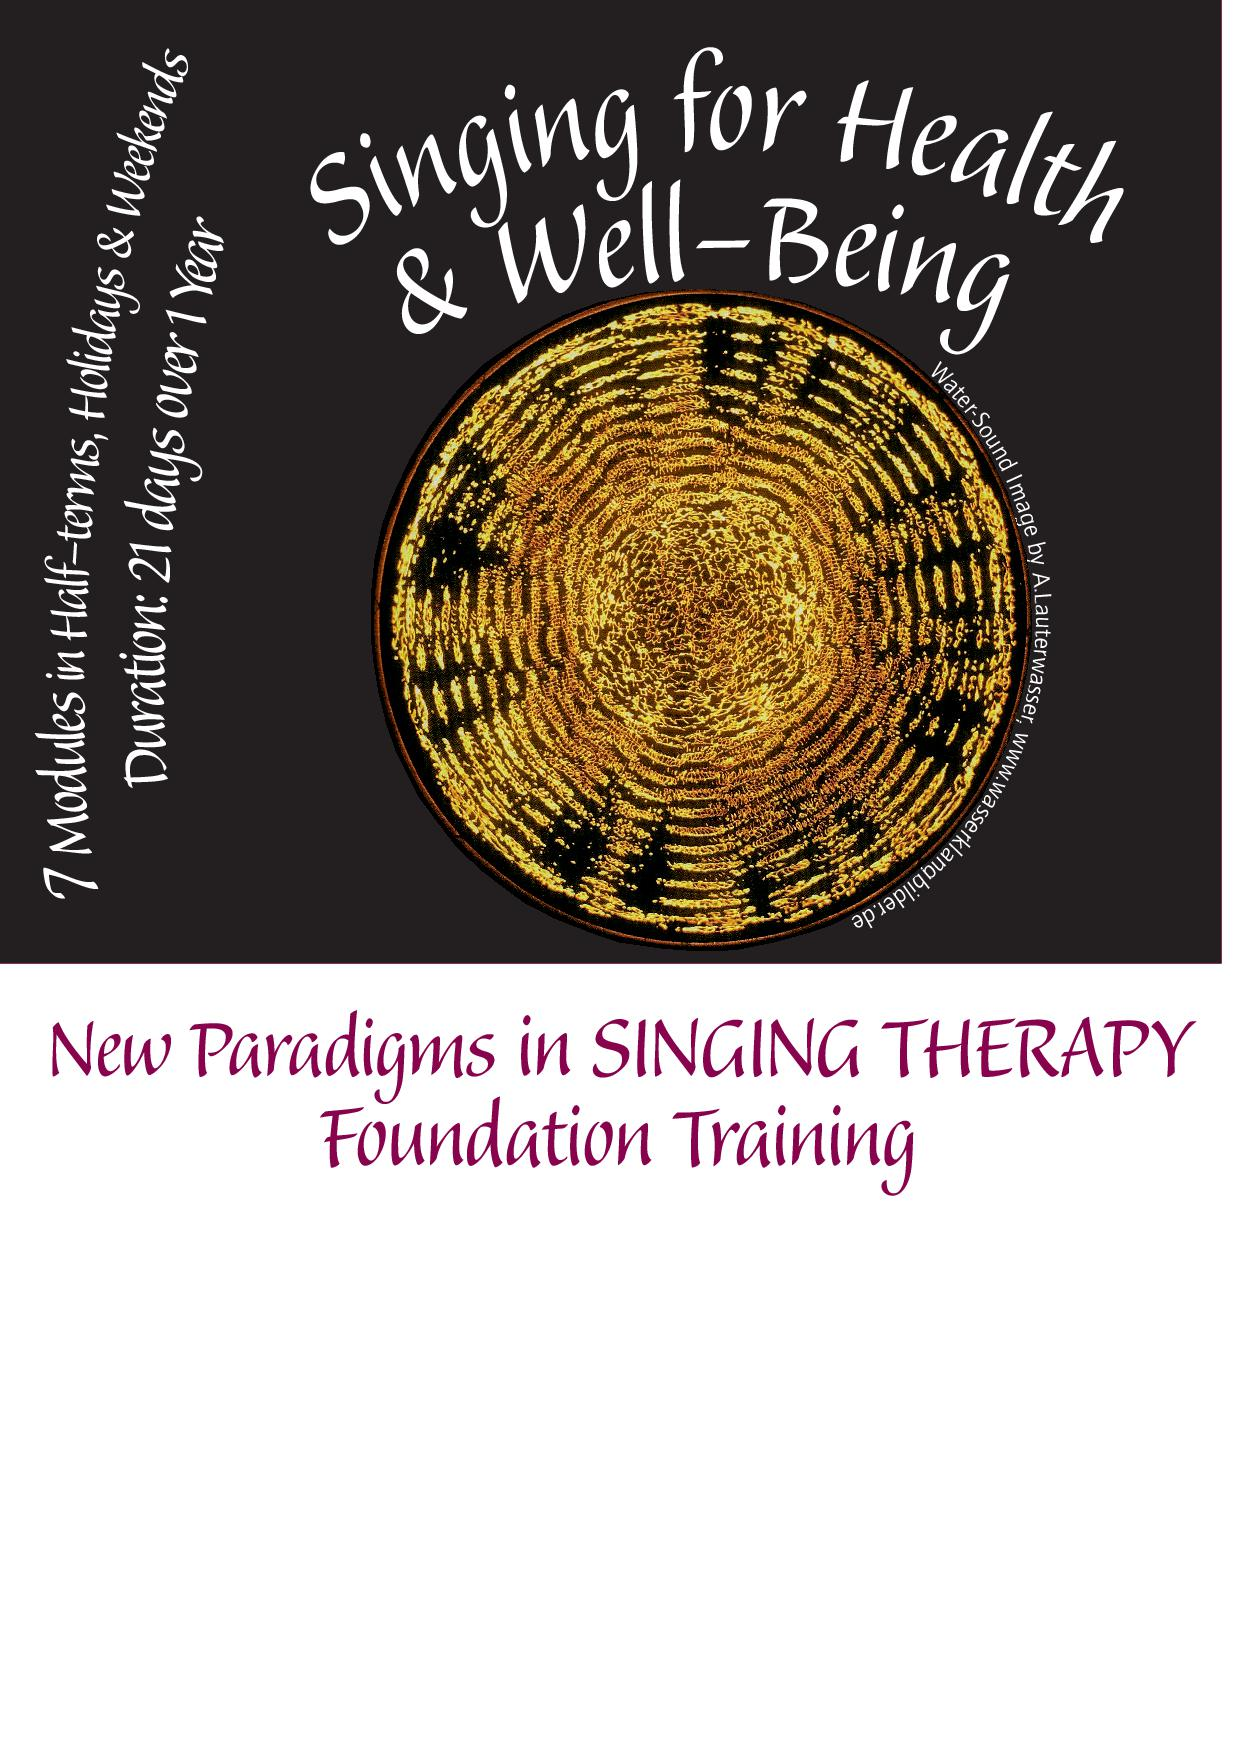 Singing for Health and Wellbeing